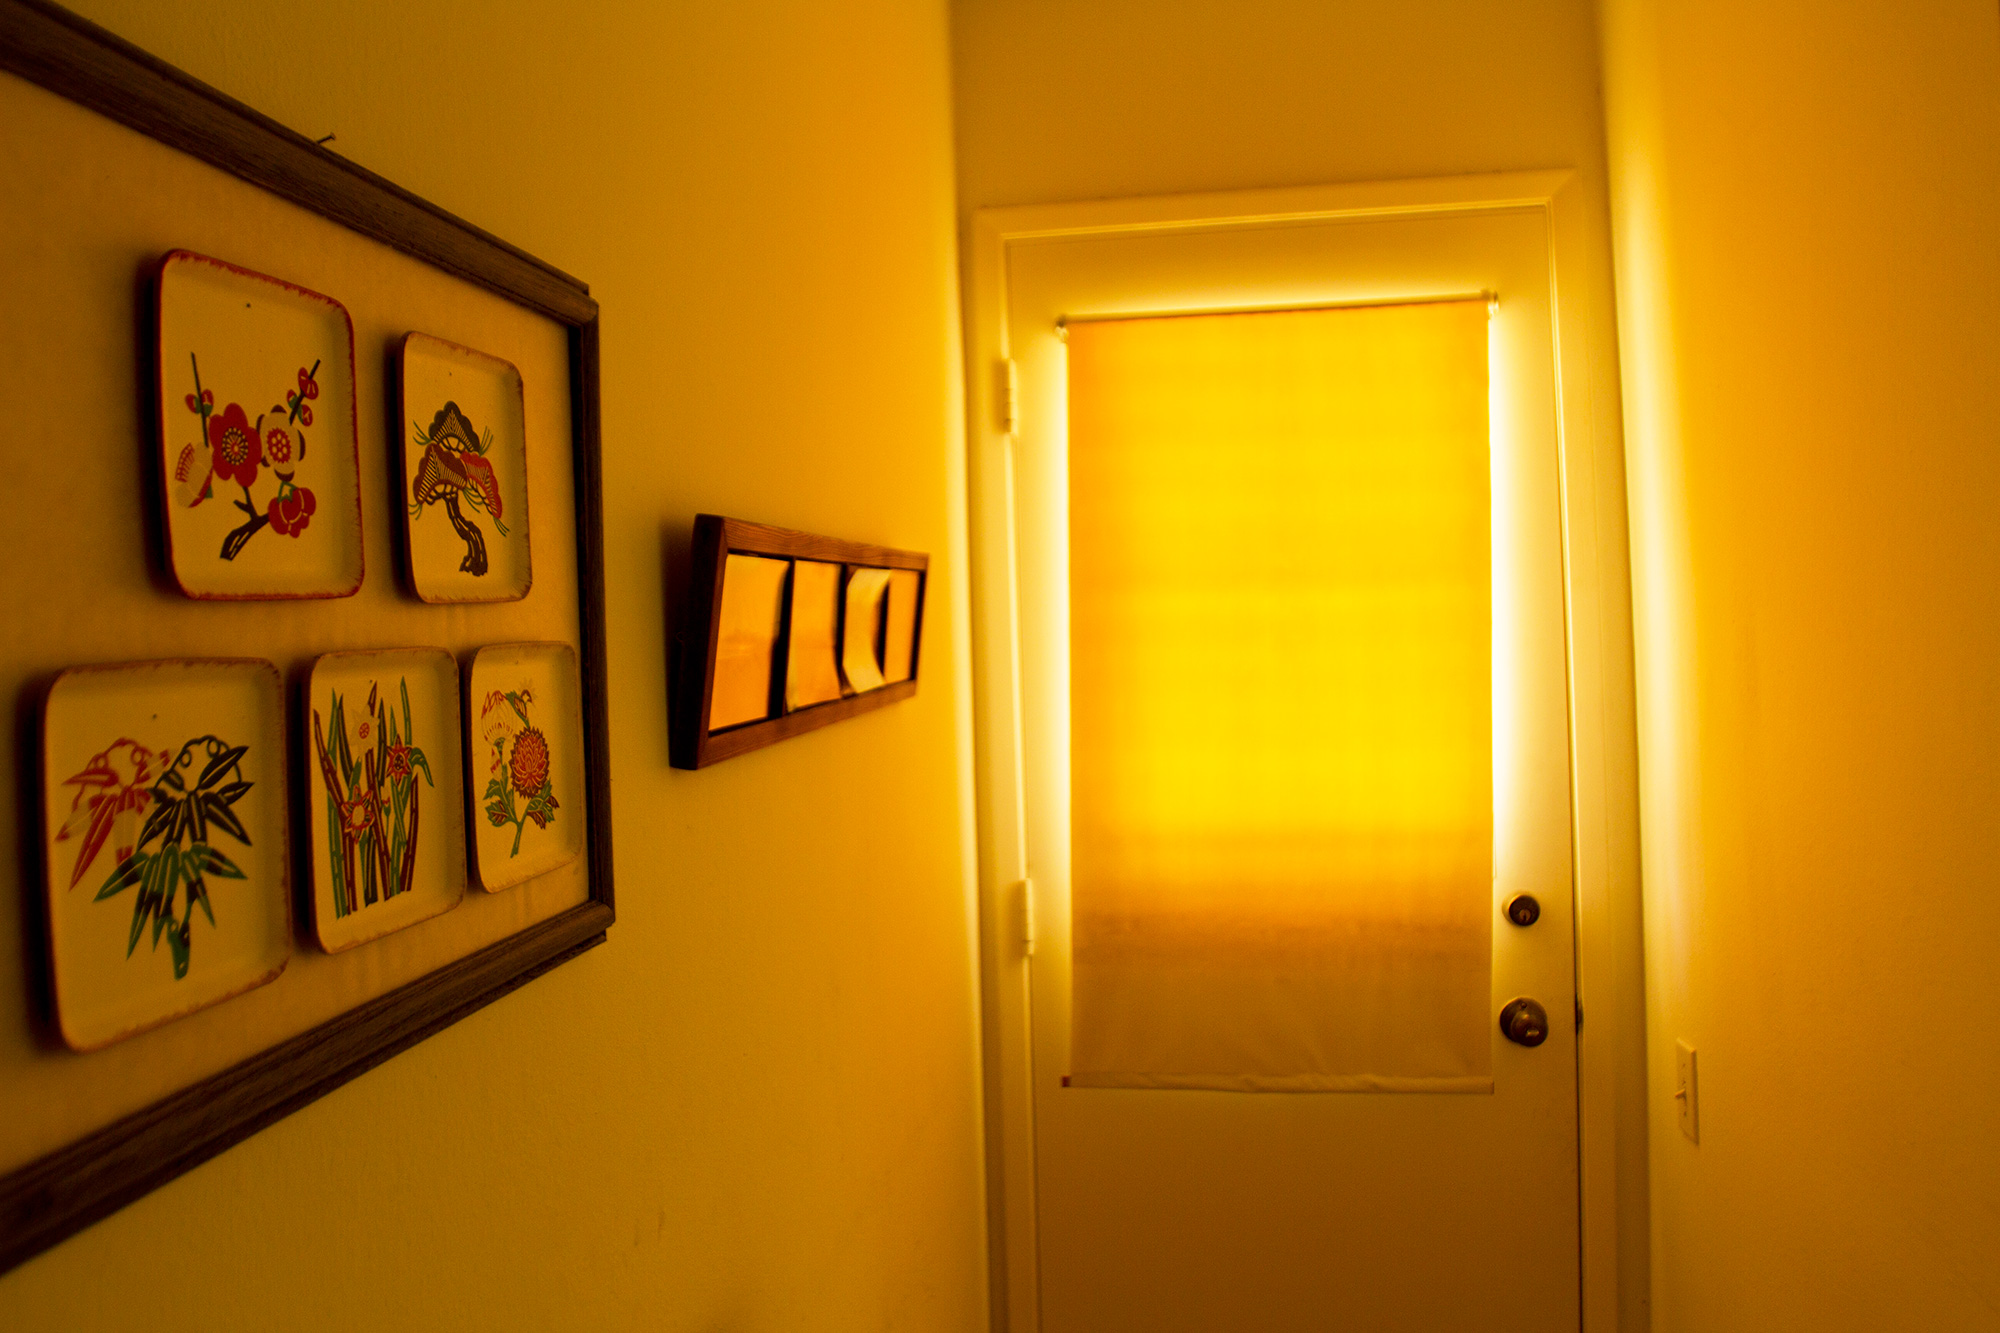 A hallway leading to a door with framed square plates with bamboo, cherry blossom and other nature-inspired designs. Bright light shows through a closed blind on the door, casting a yellow light over the hallway.